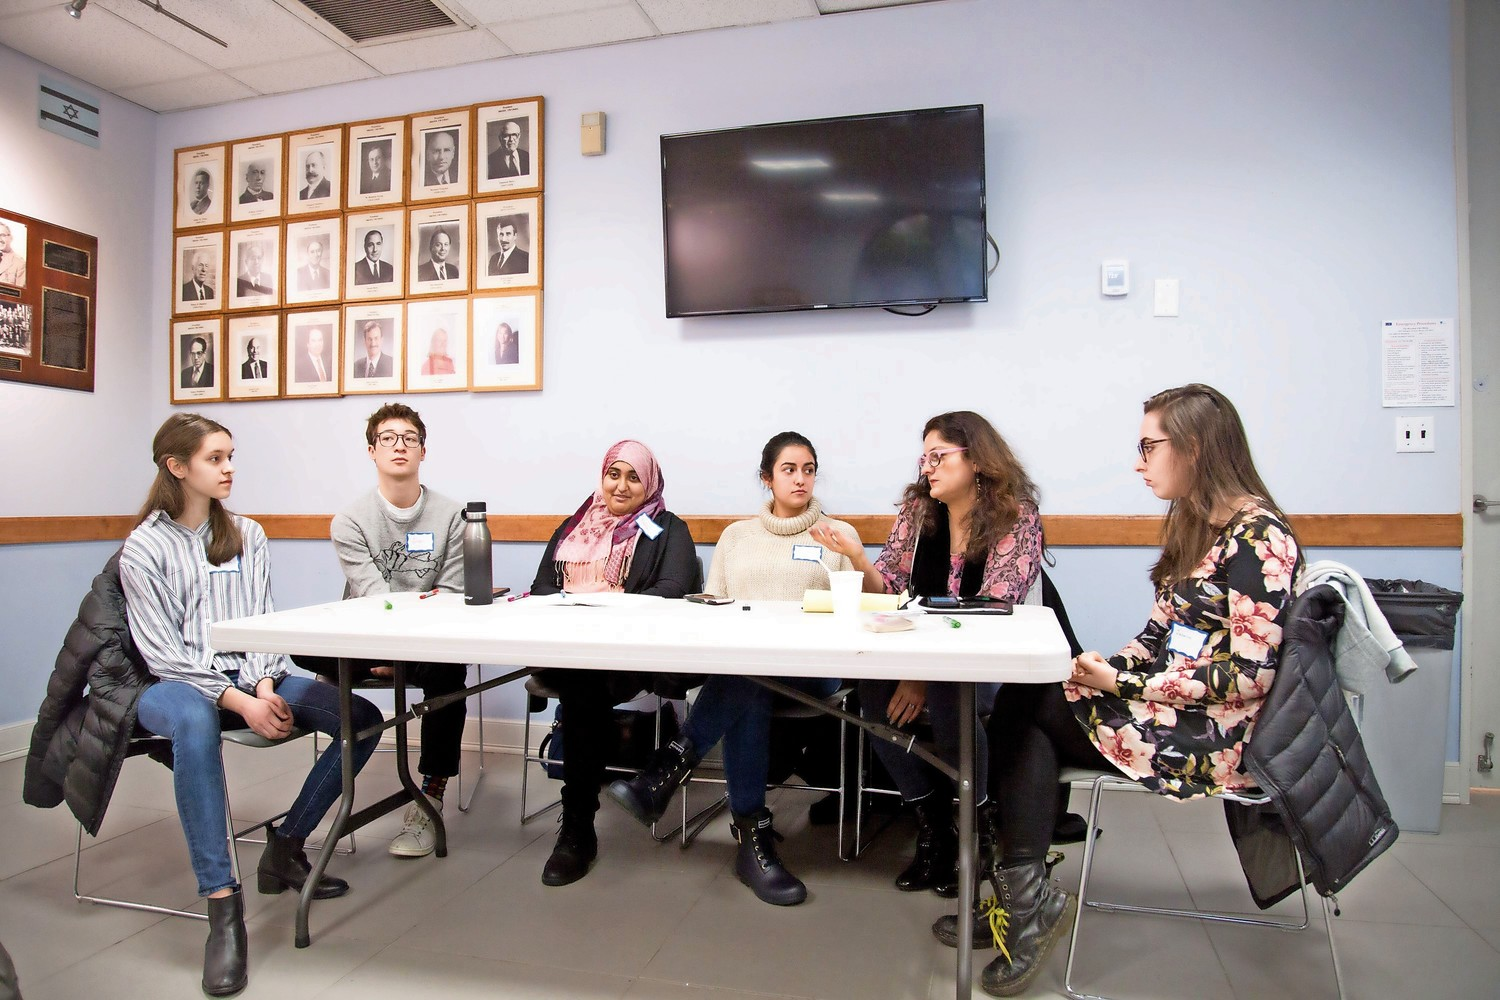 Mehnaz Afridi, a professor of religious studies at Manhattan College, speaks at an interfaith event for Jewish and Muslim youth at the Riverdale Y.